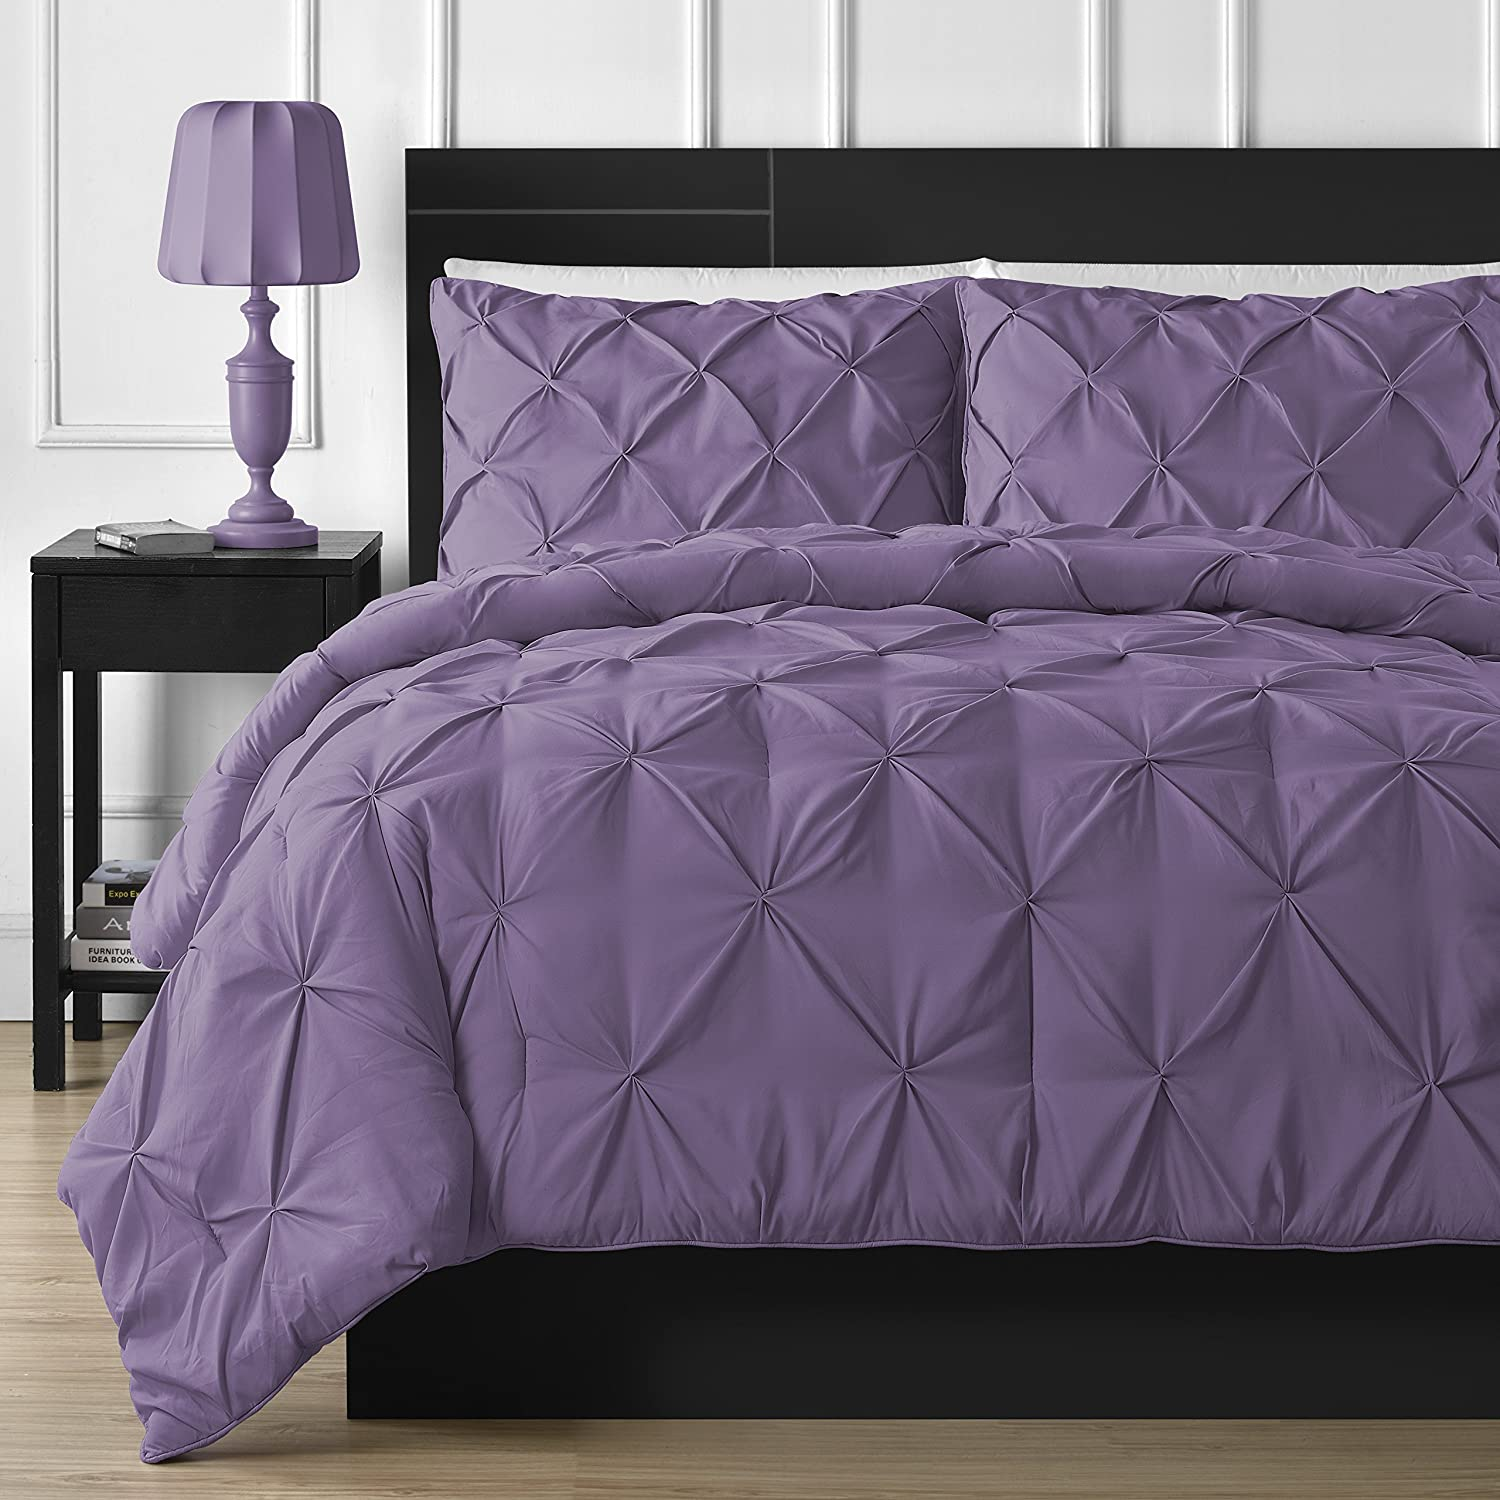 Double-Needle Durable Stitching Comfy Bedding 3-piece Pinch Pleat Comforter Set King, Purple